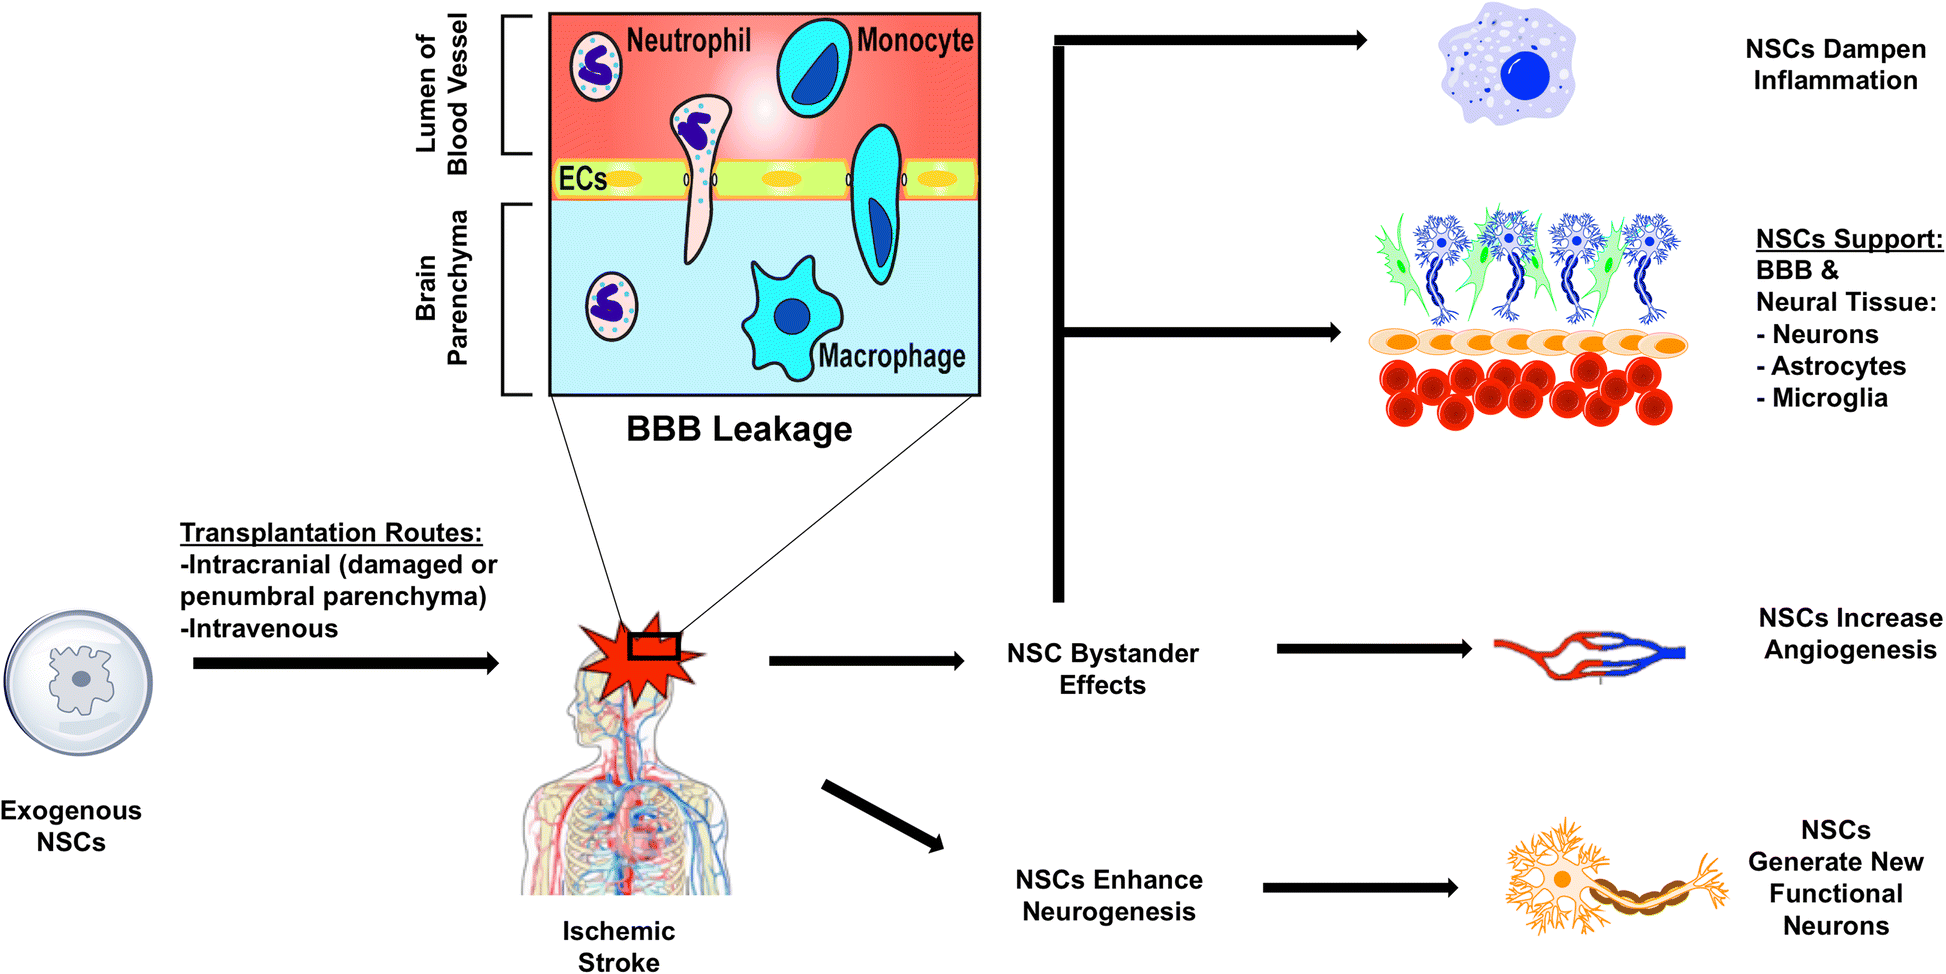 Neural Stem Cell Therapy For Subacute And Chronic Ischemic Stroke Thread Color Organ Schematic Fig 2